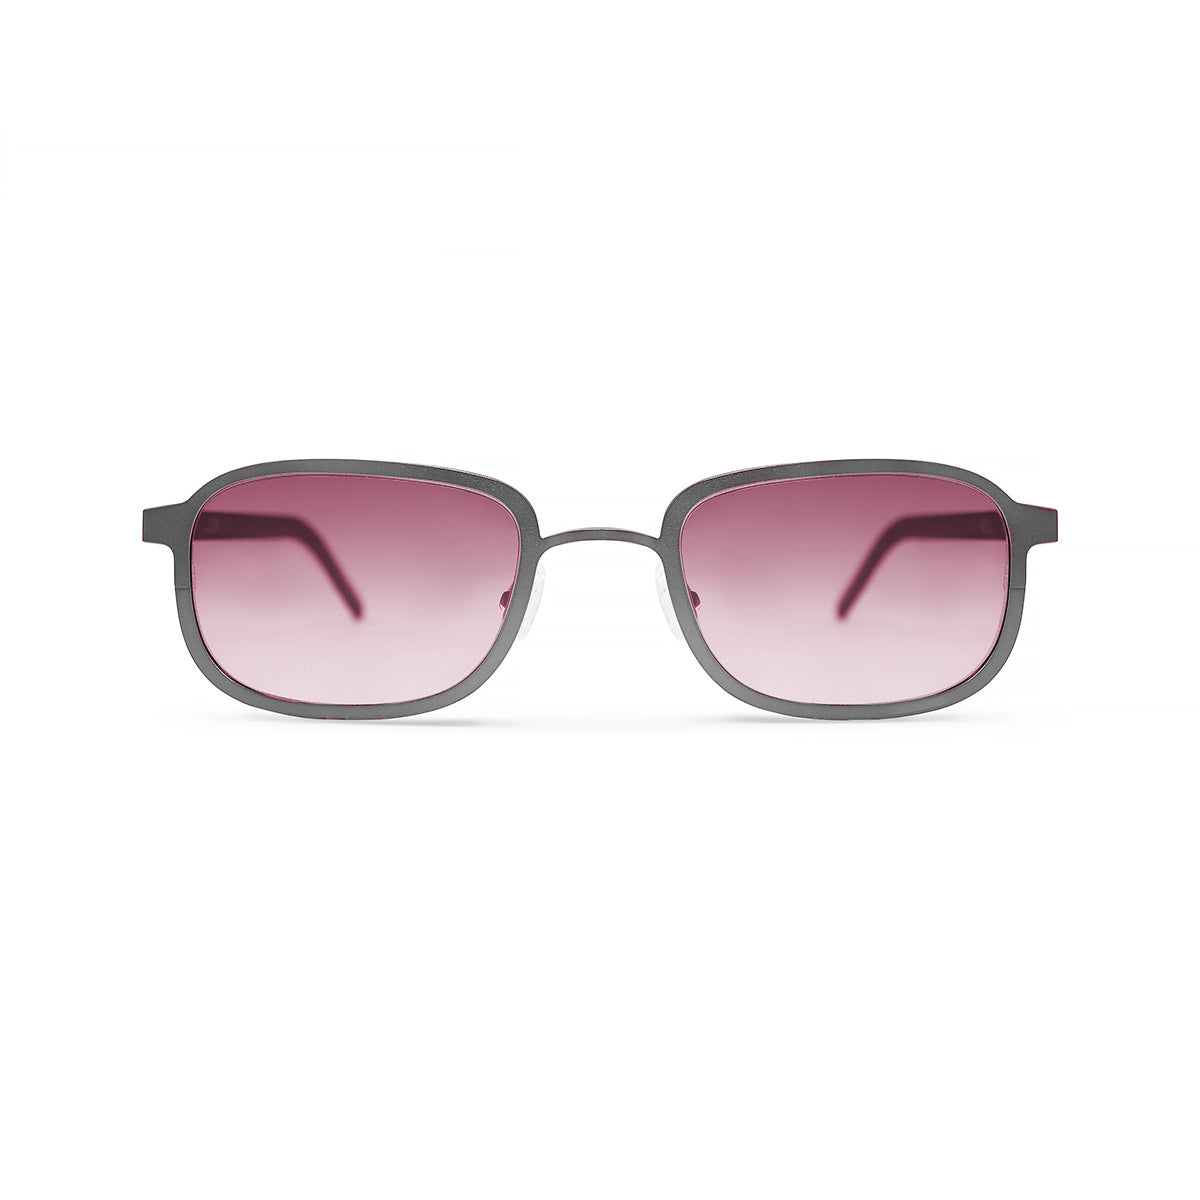 v2 of Metal. Brushed Silver. Blush Lens. - BLYSZAK eyewear eyewear - eyewear, optical, sunglasses